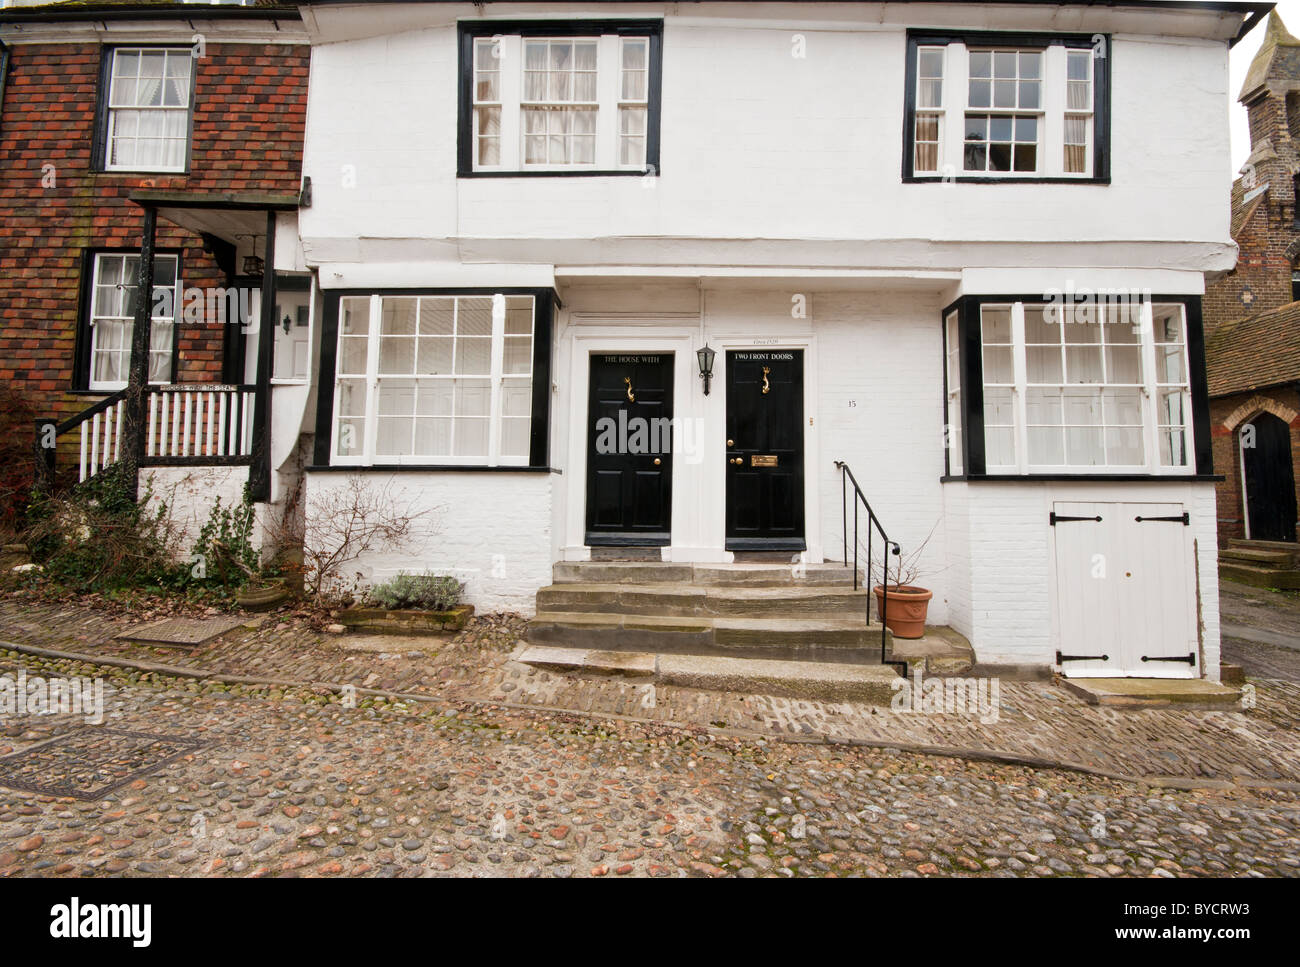 house two front doors town stockfotos house two front doors town bilder alamy. Black Bedroom Furniture Sets. Home Design Ideas